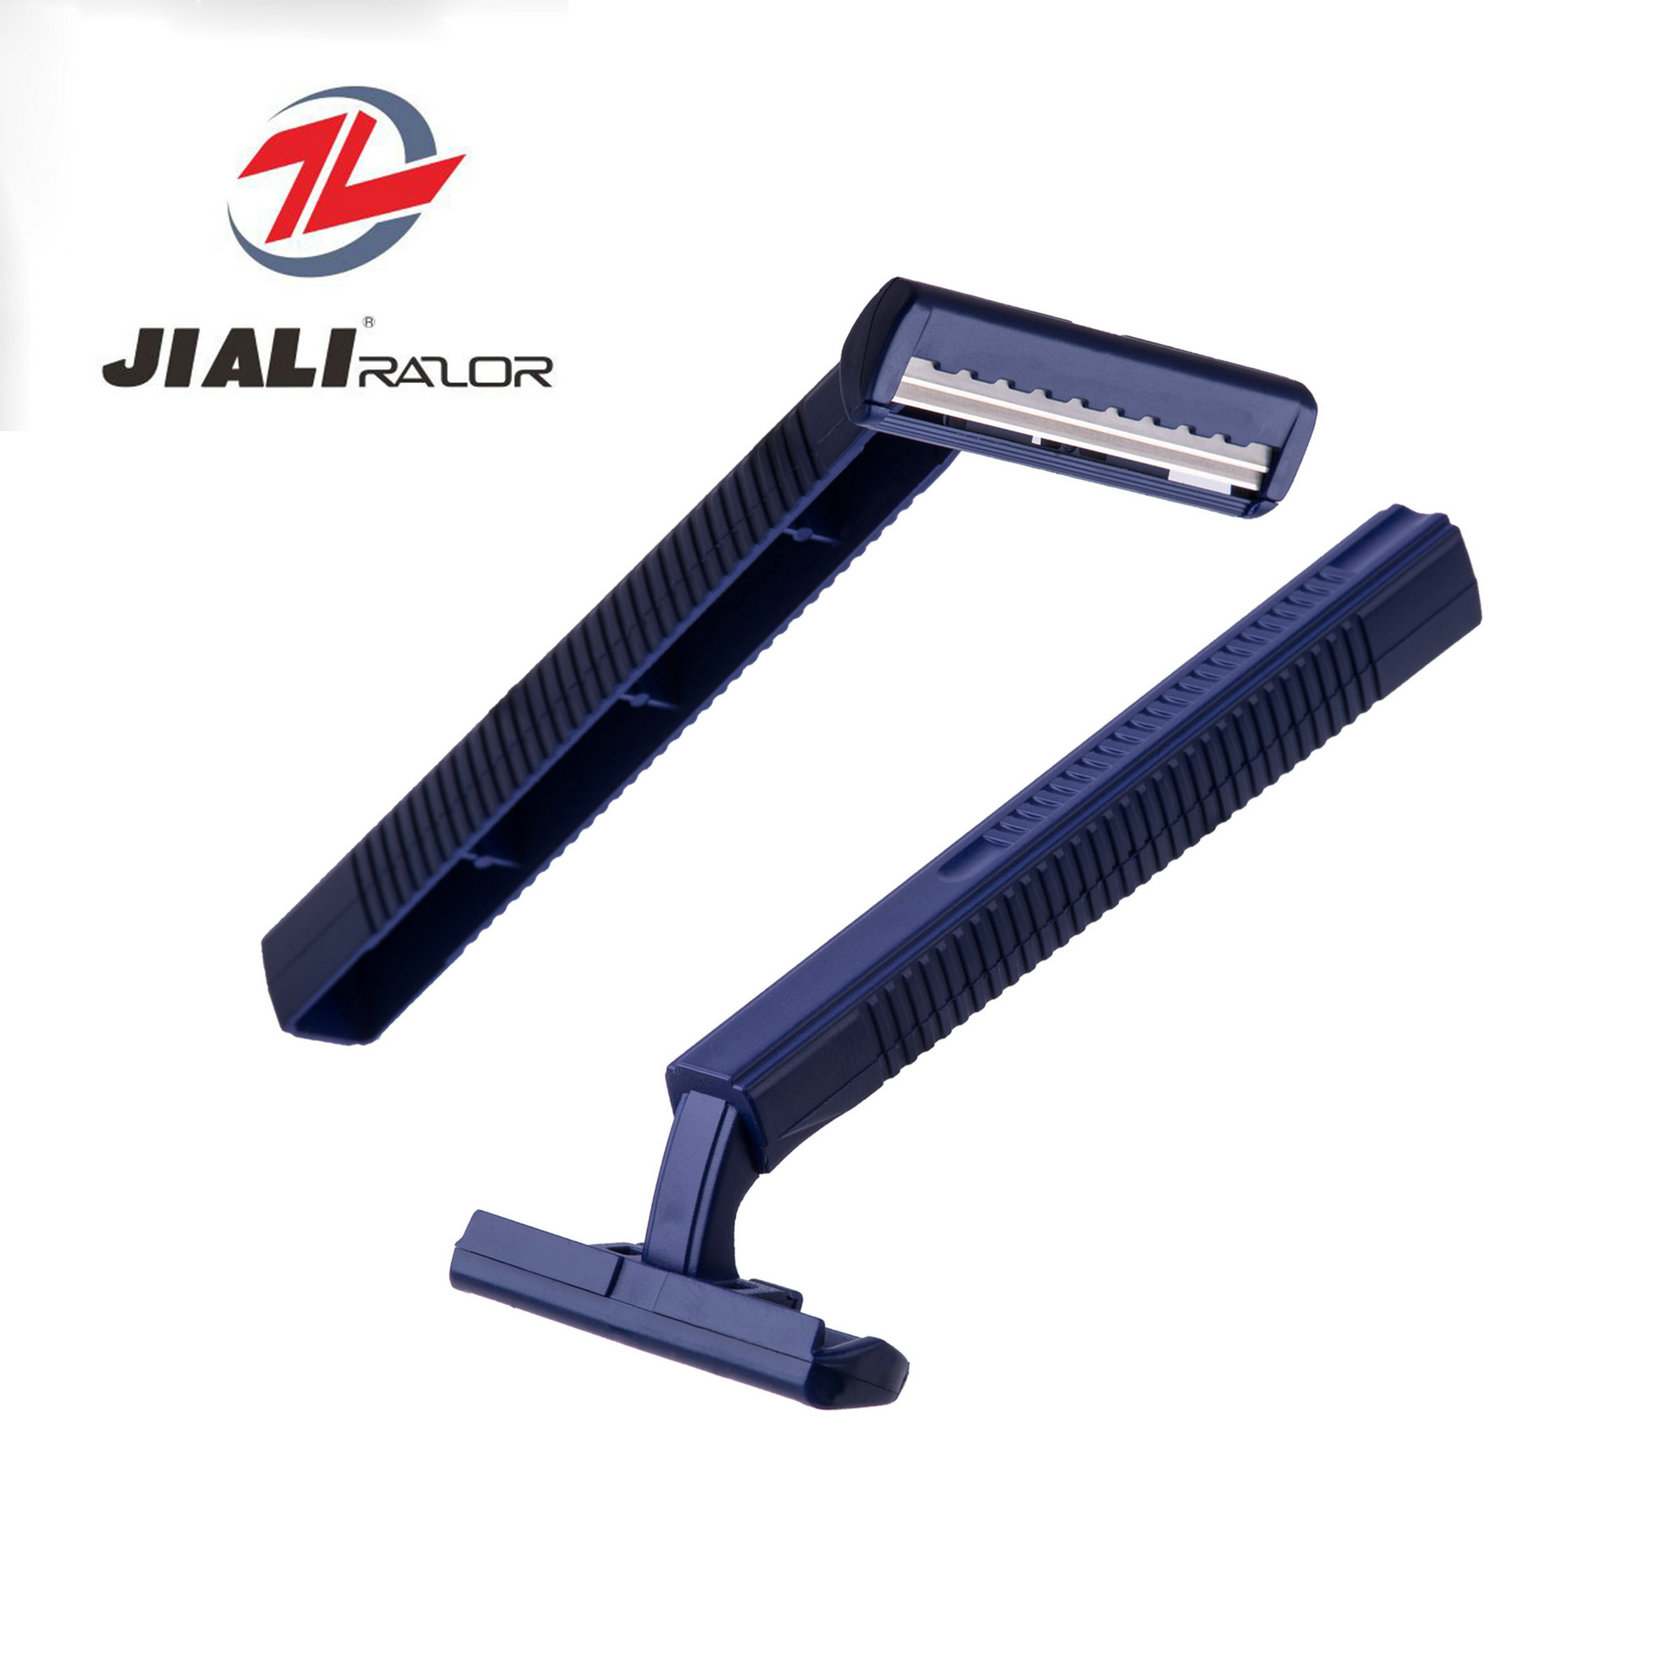 Disposable Razor Brand Manufacturer In China